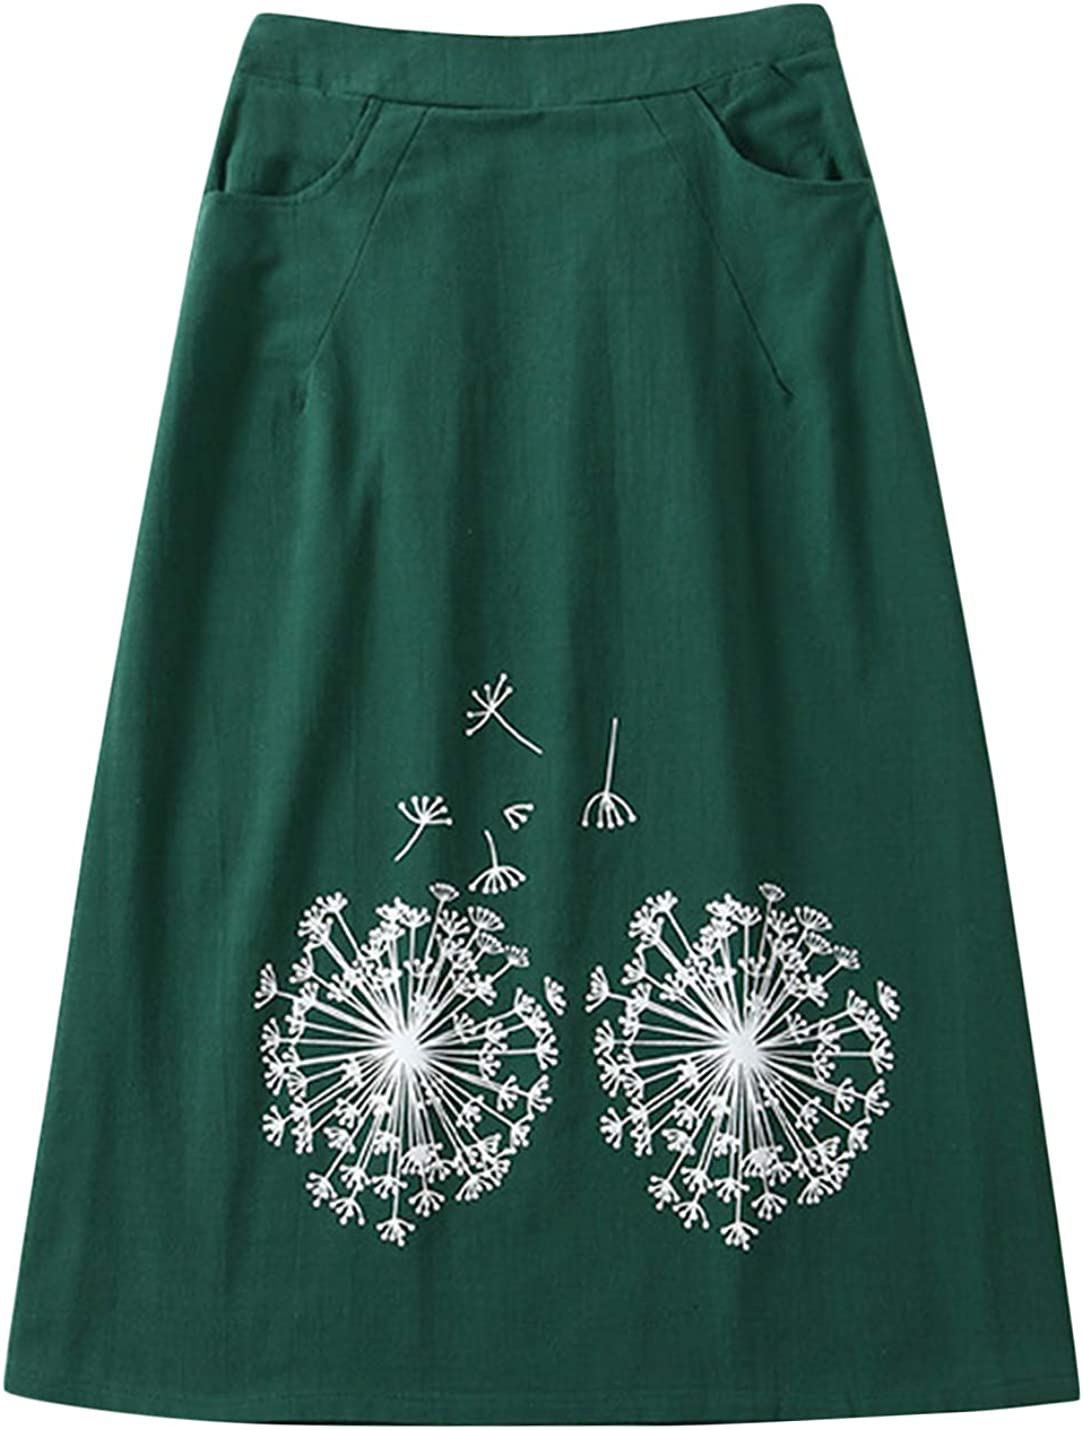 Uaneo Women's Spring Casual Elastic Waist Floral Print Cotton Linen Midi Skirts (Green, X-Small)